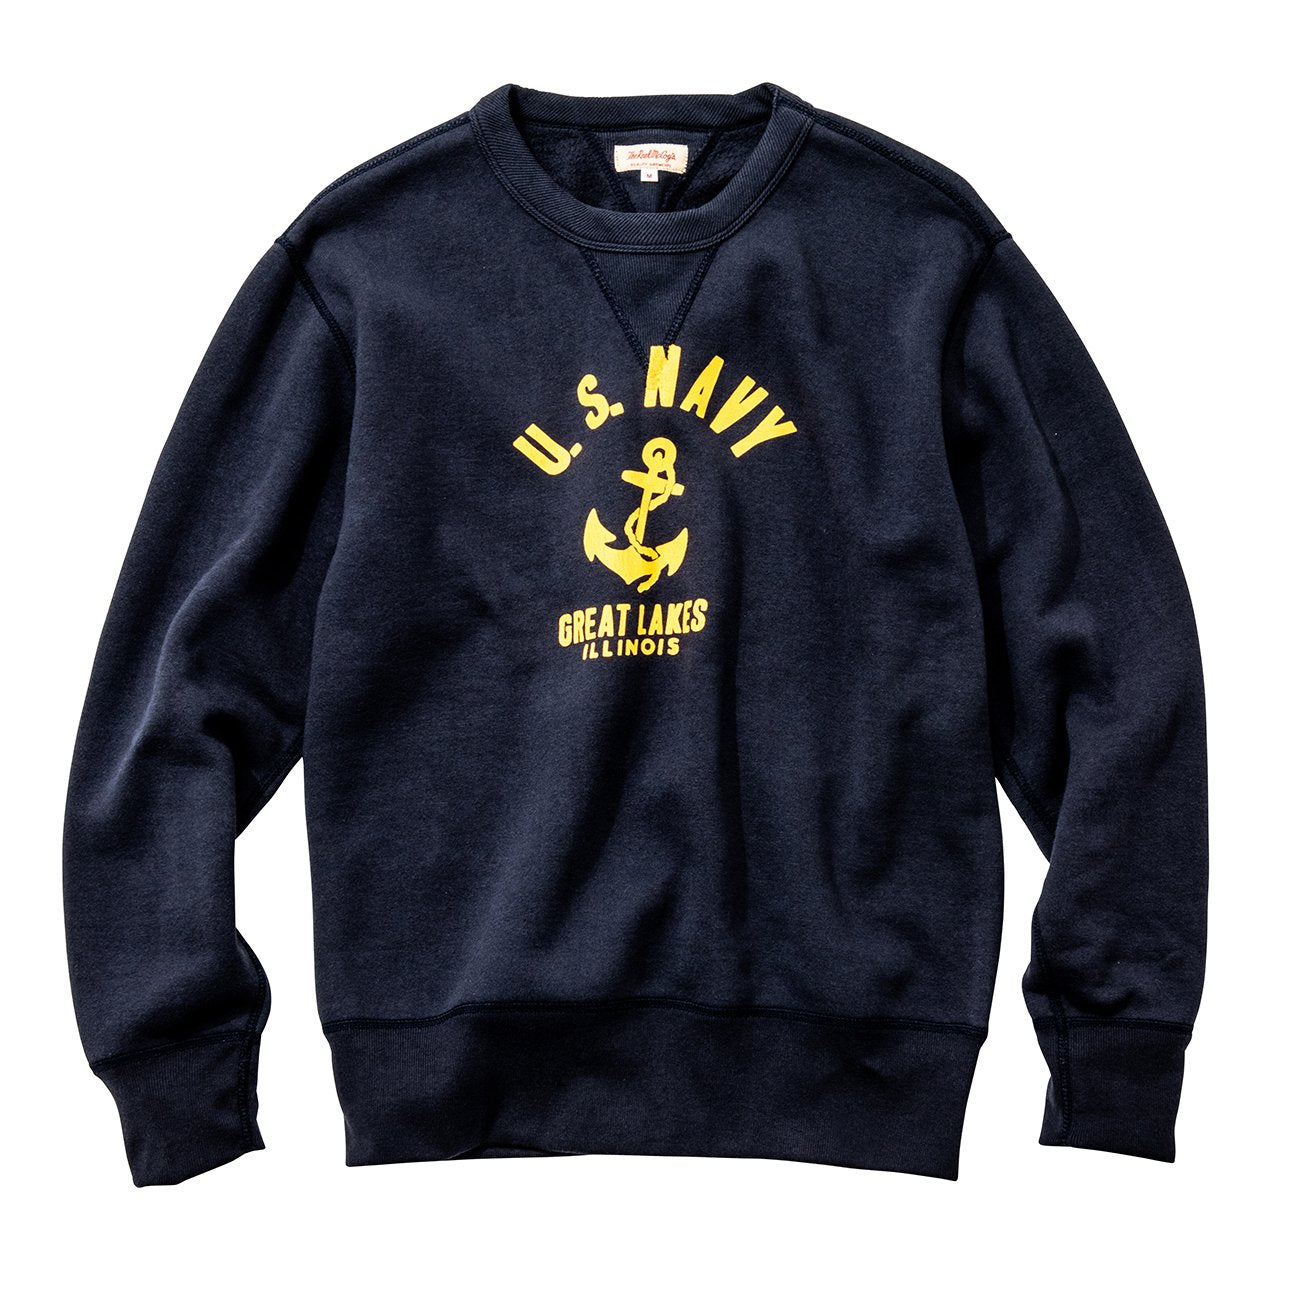 Military Print Sweatshirt / U.S. Navy Anchor